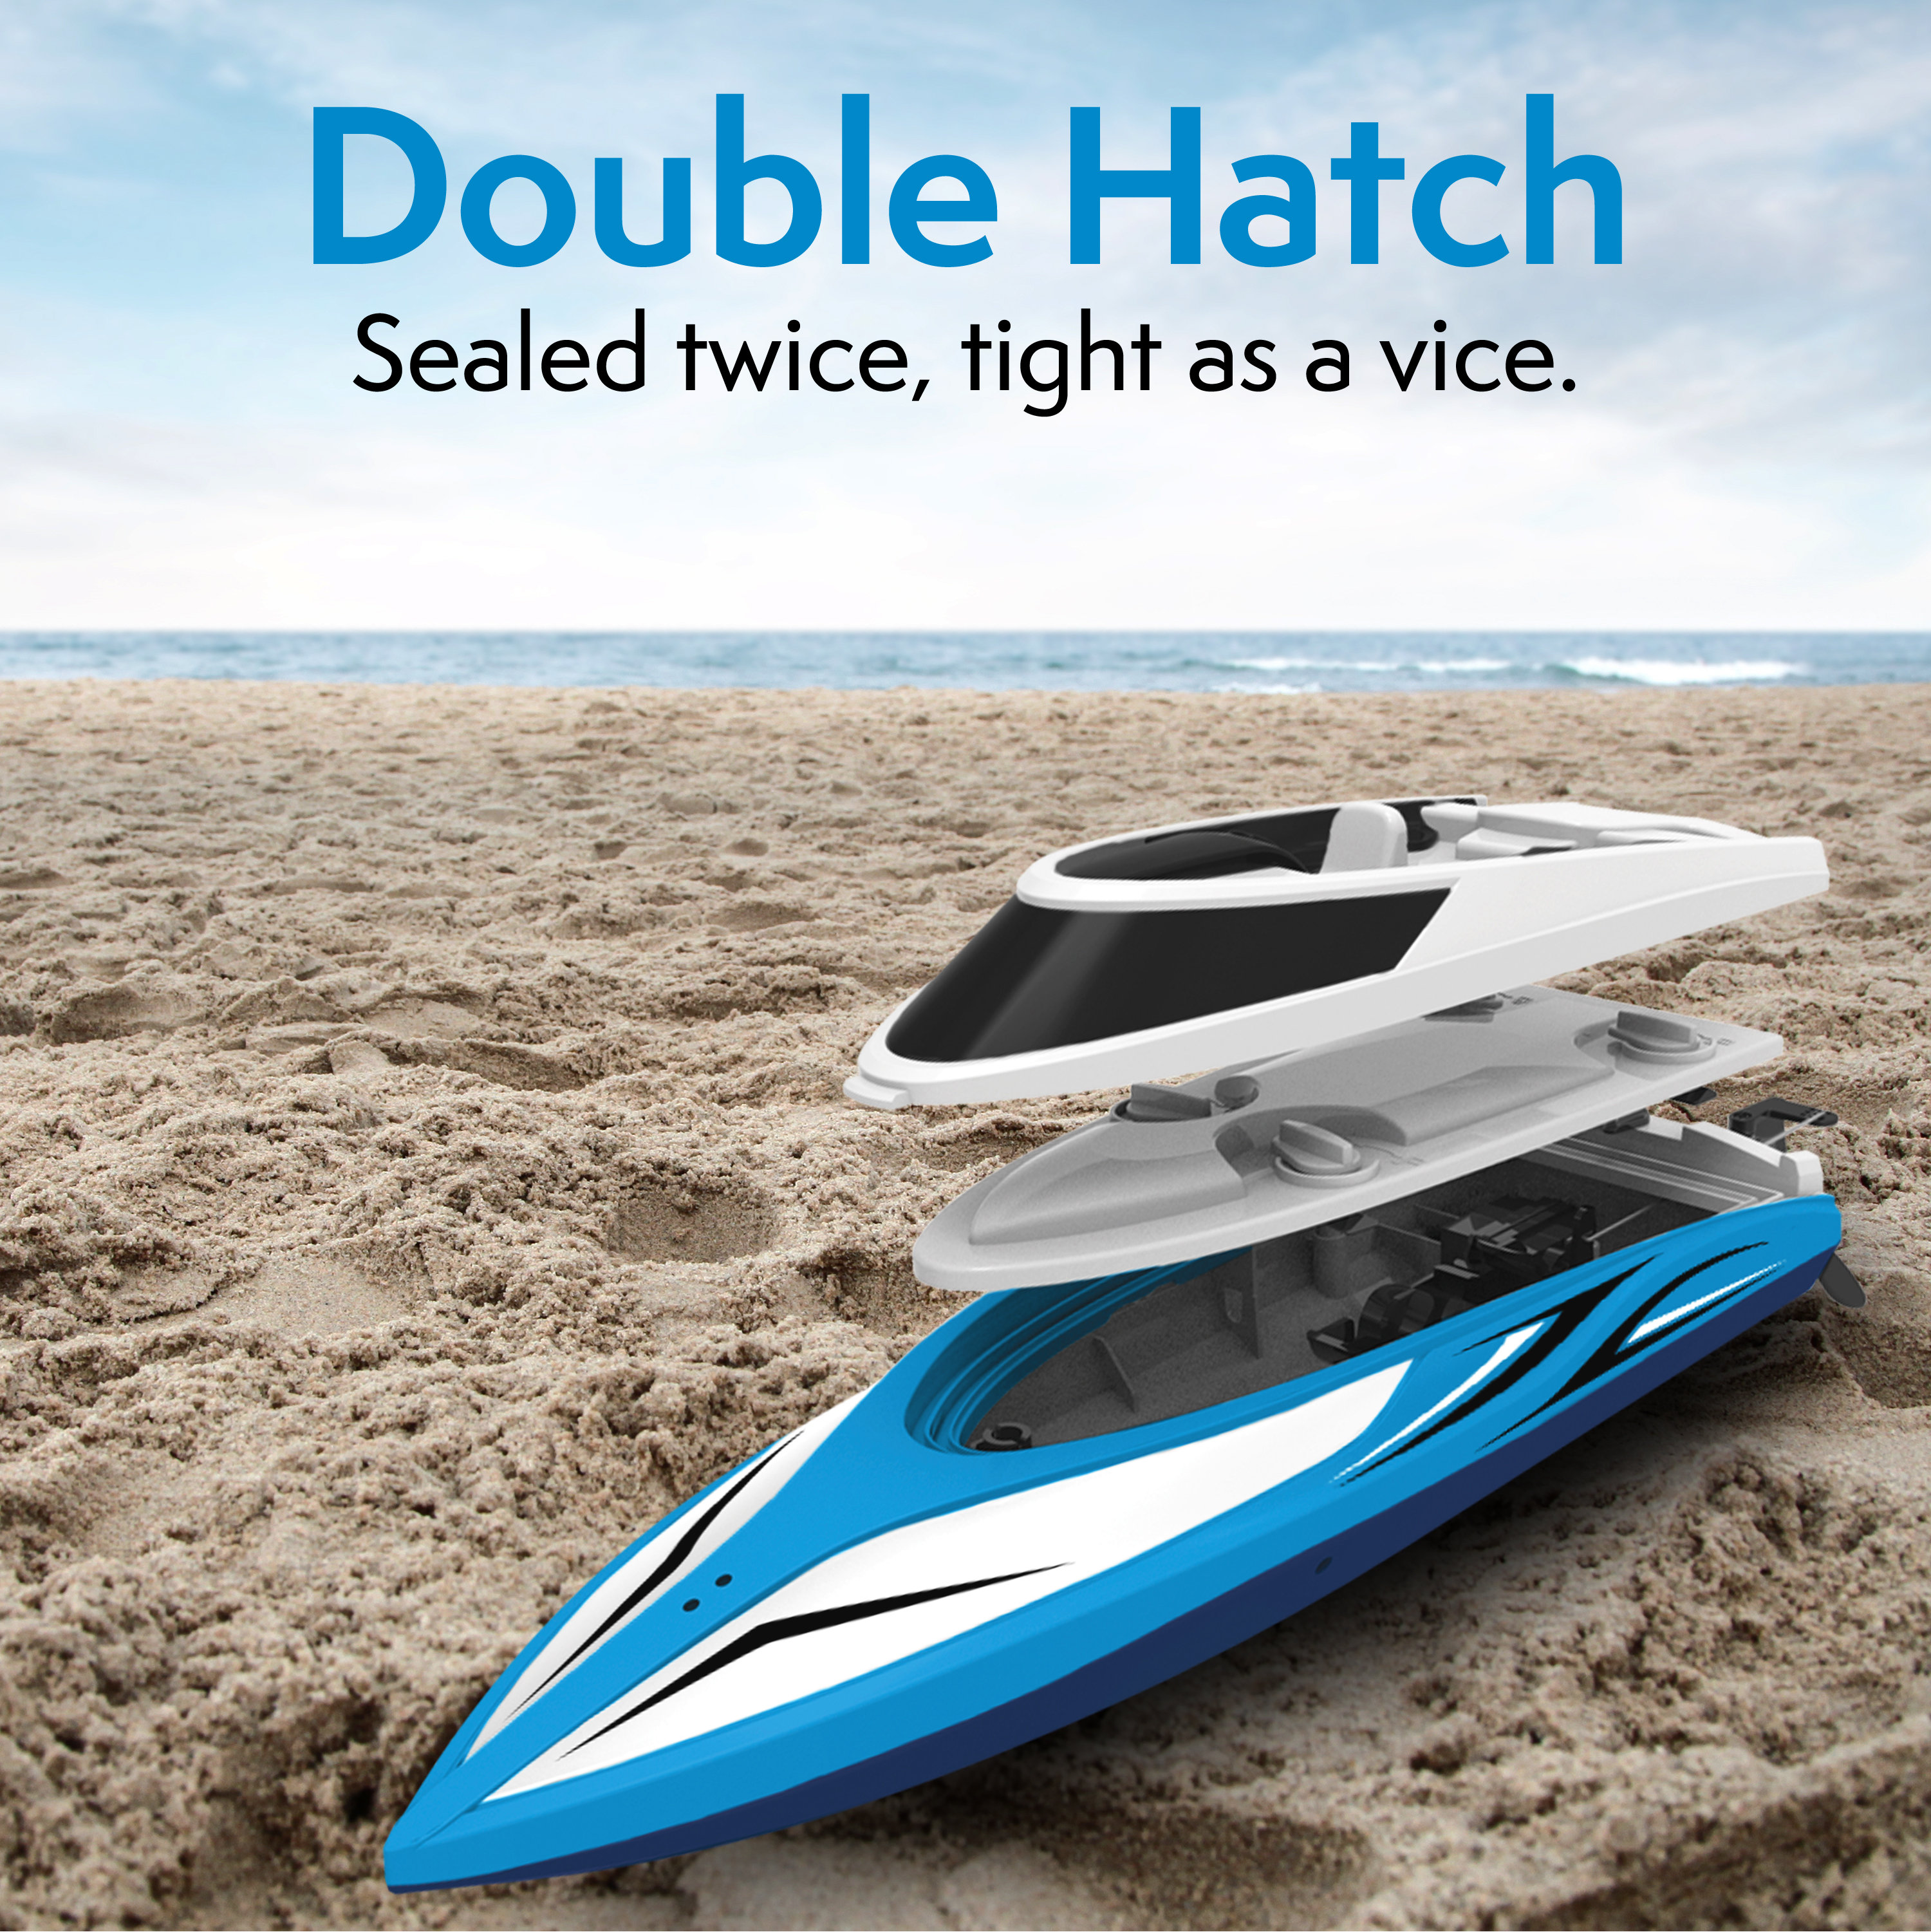 Details about Force1 High Speed Remote Control Boat for LAKES Pools CAPSIZE  RECOVERY Blue